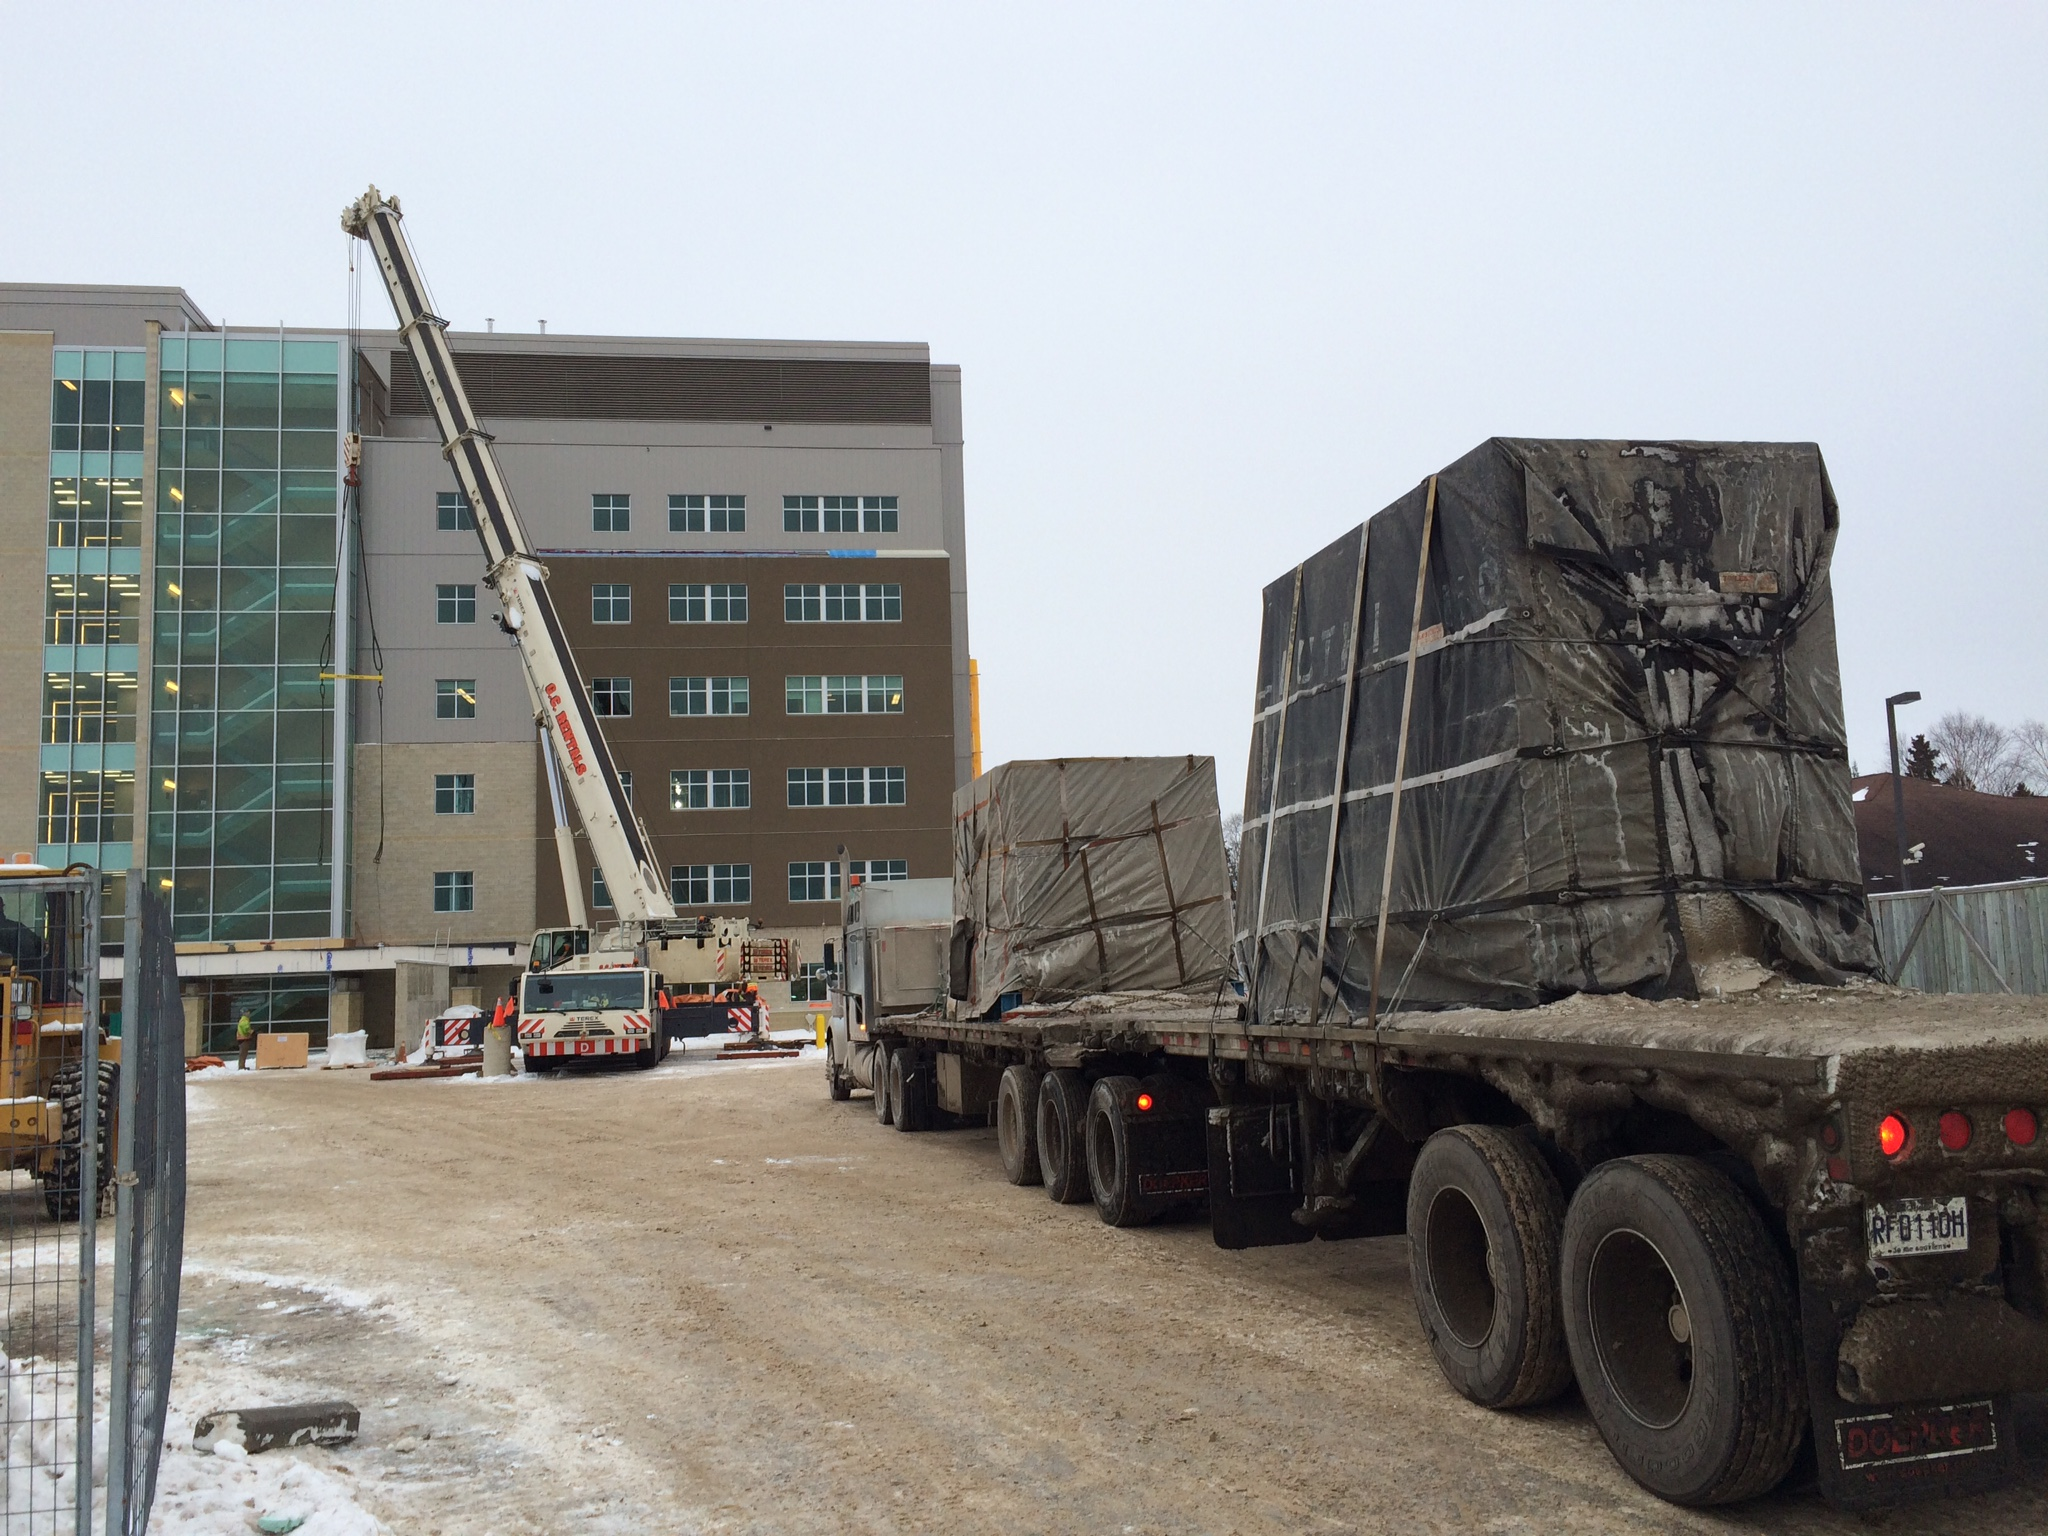 Arrival of Cyclotron